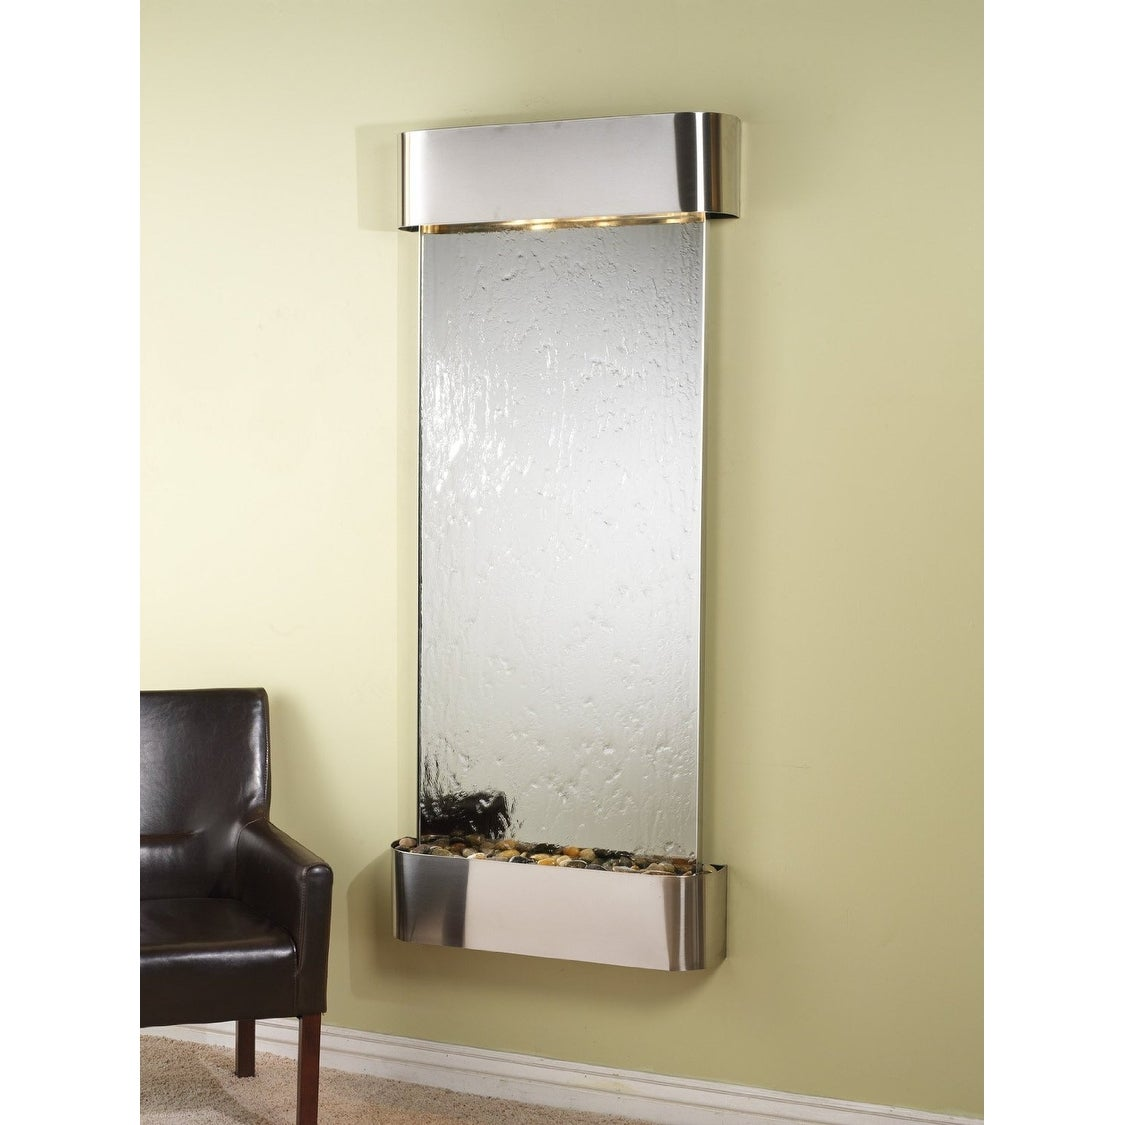 Adagio Inspiration Falls Fountain w/ Silver Mirror in Stainless Steel Finish - Thumbnail 0